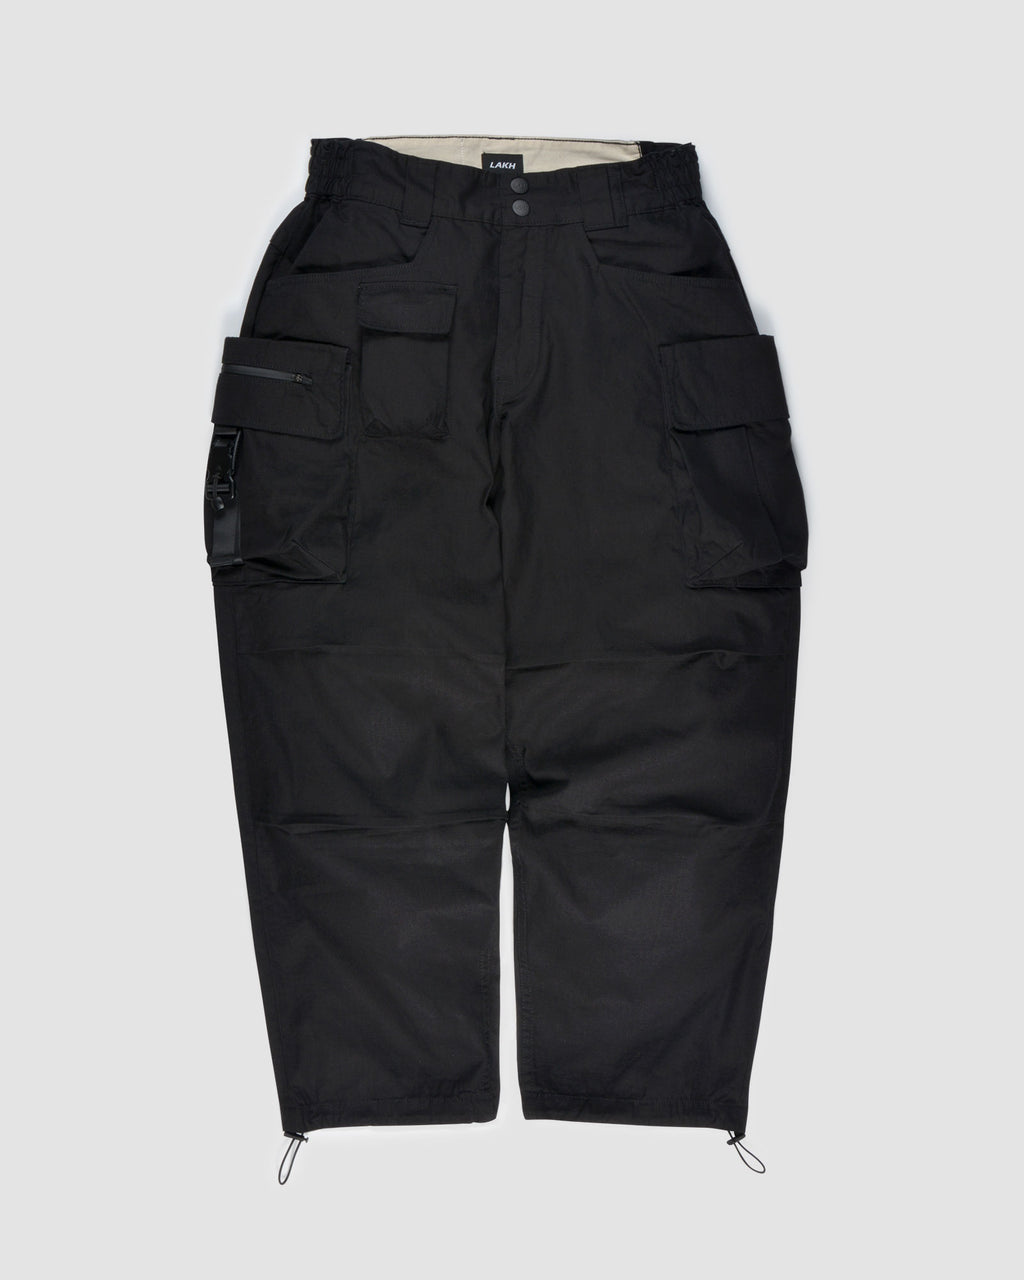 Ten Pockets Cargo Pants - Ripstop Black